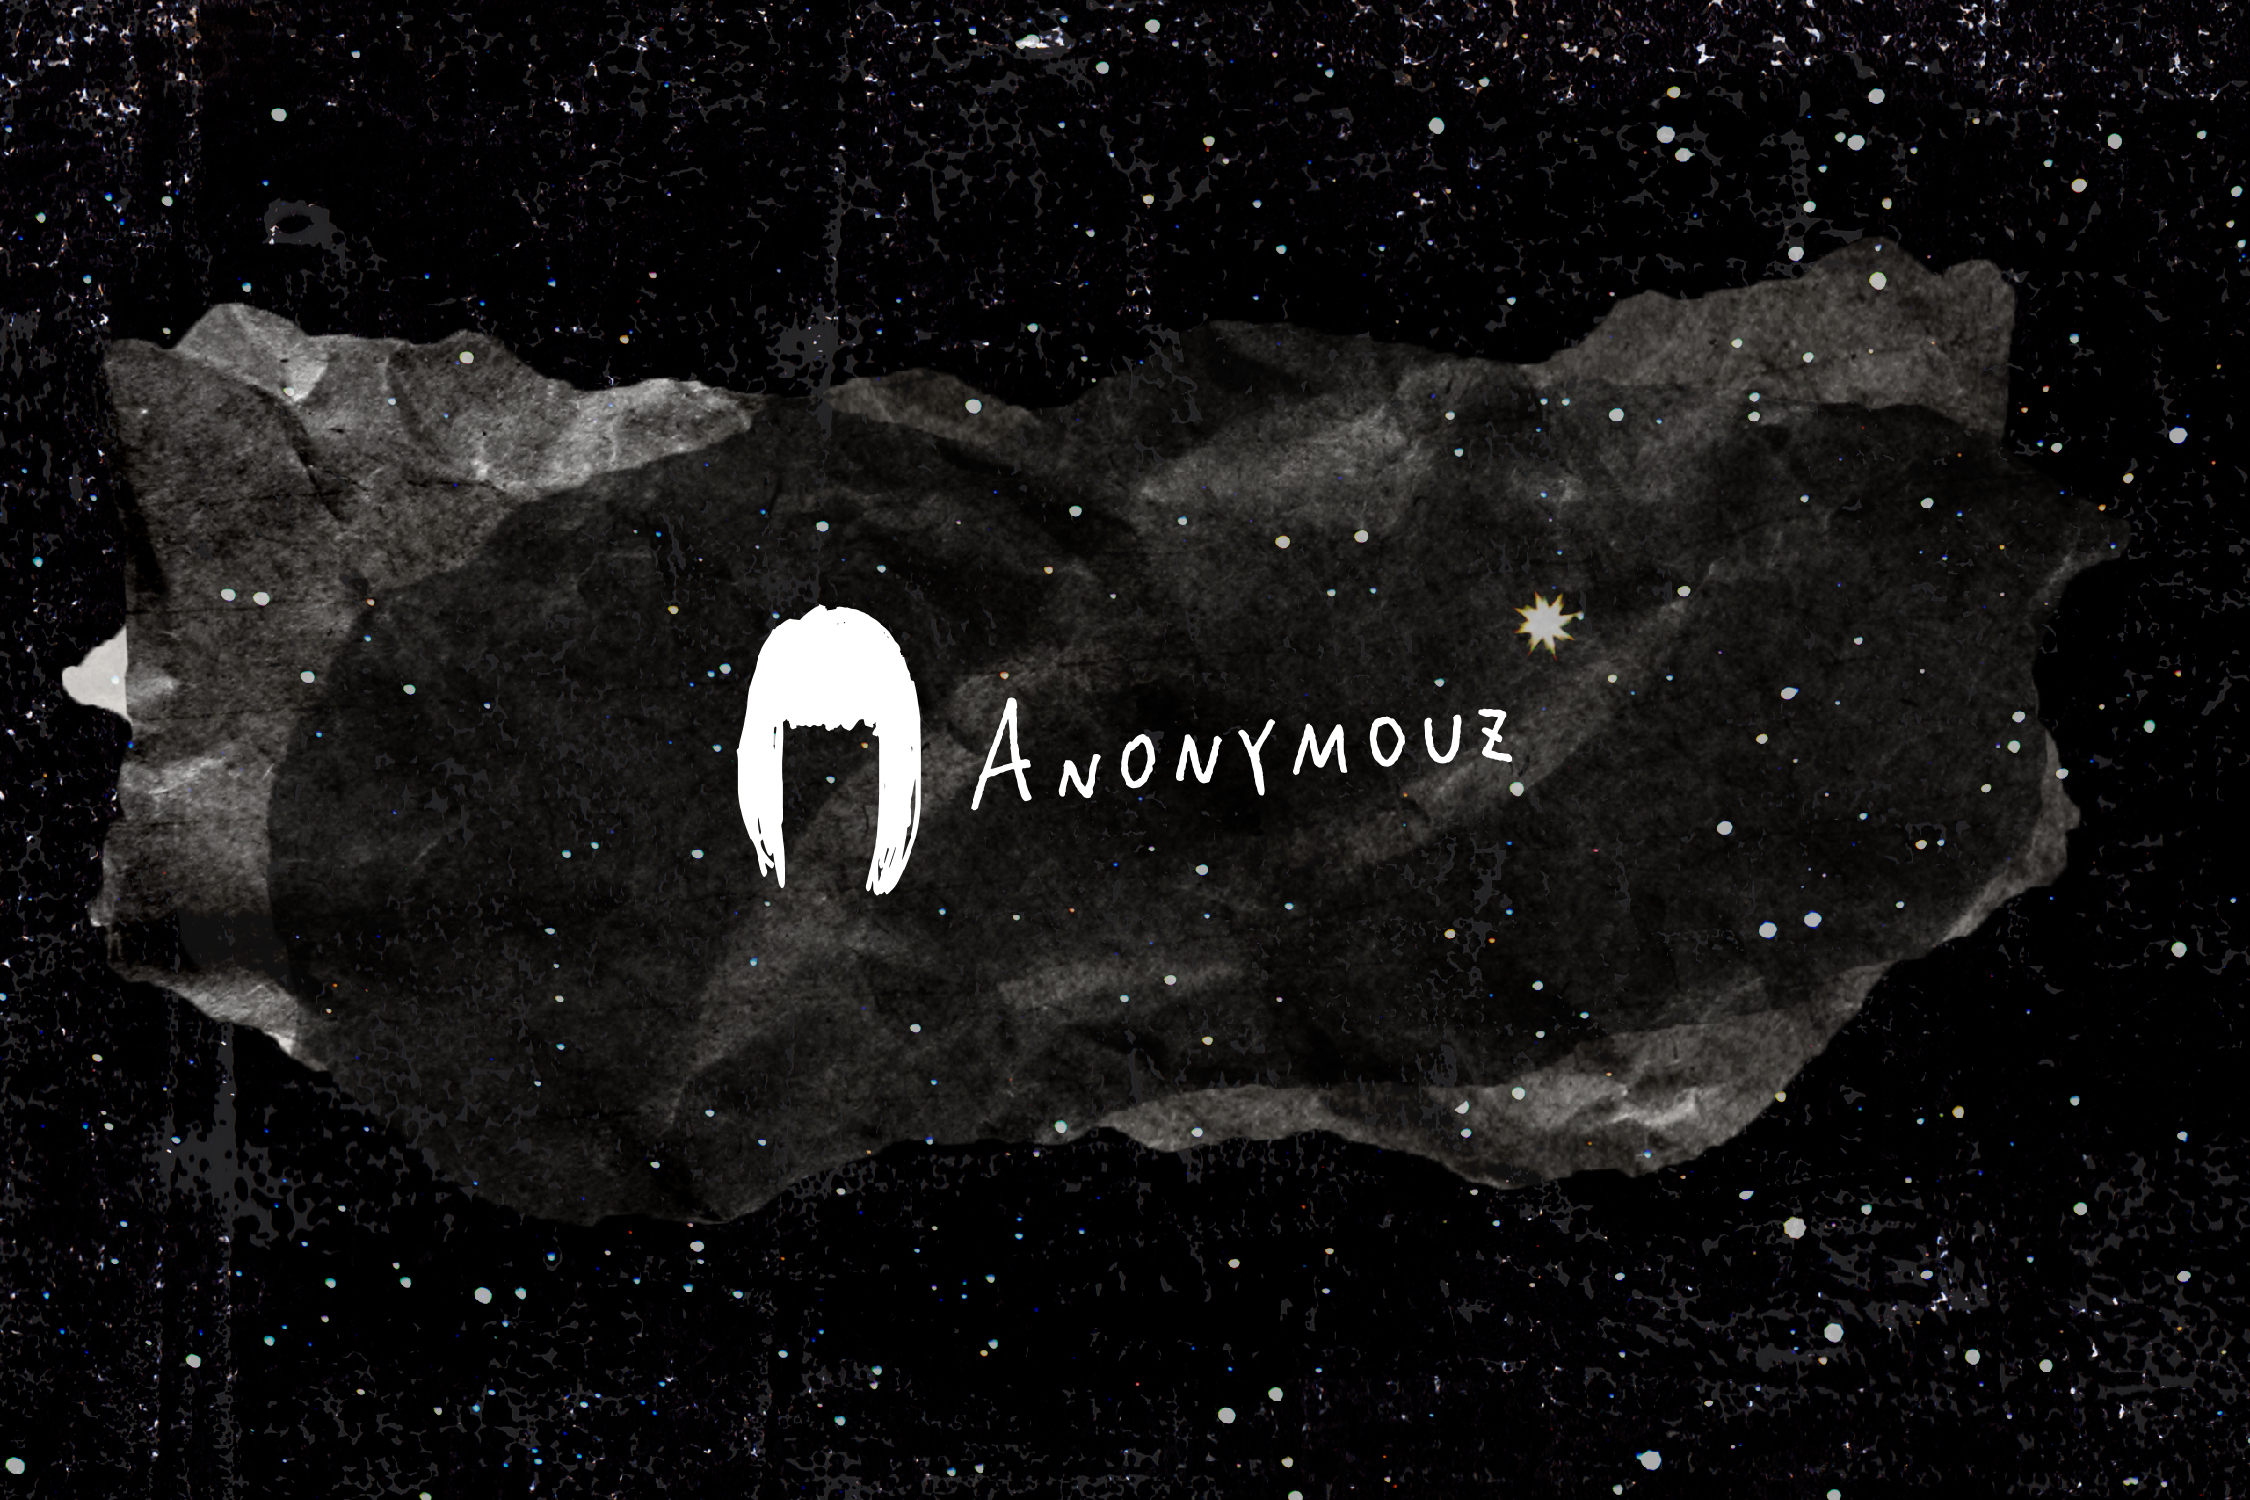 The name story animation for Anonymous to Anonymouz